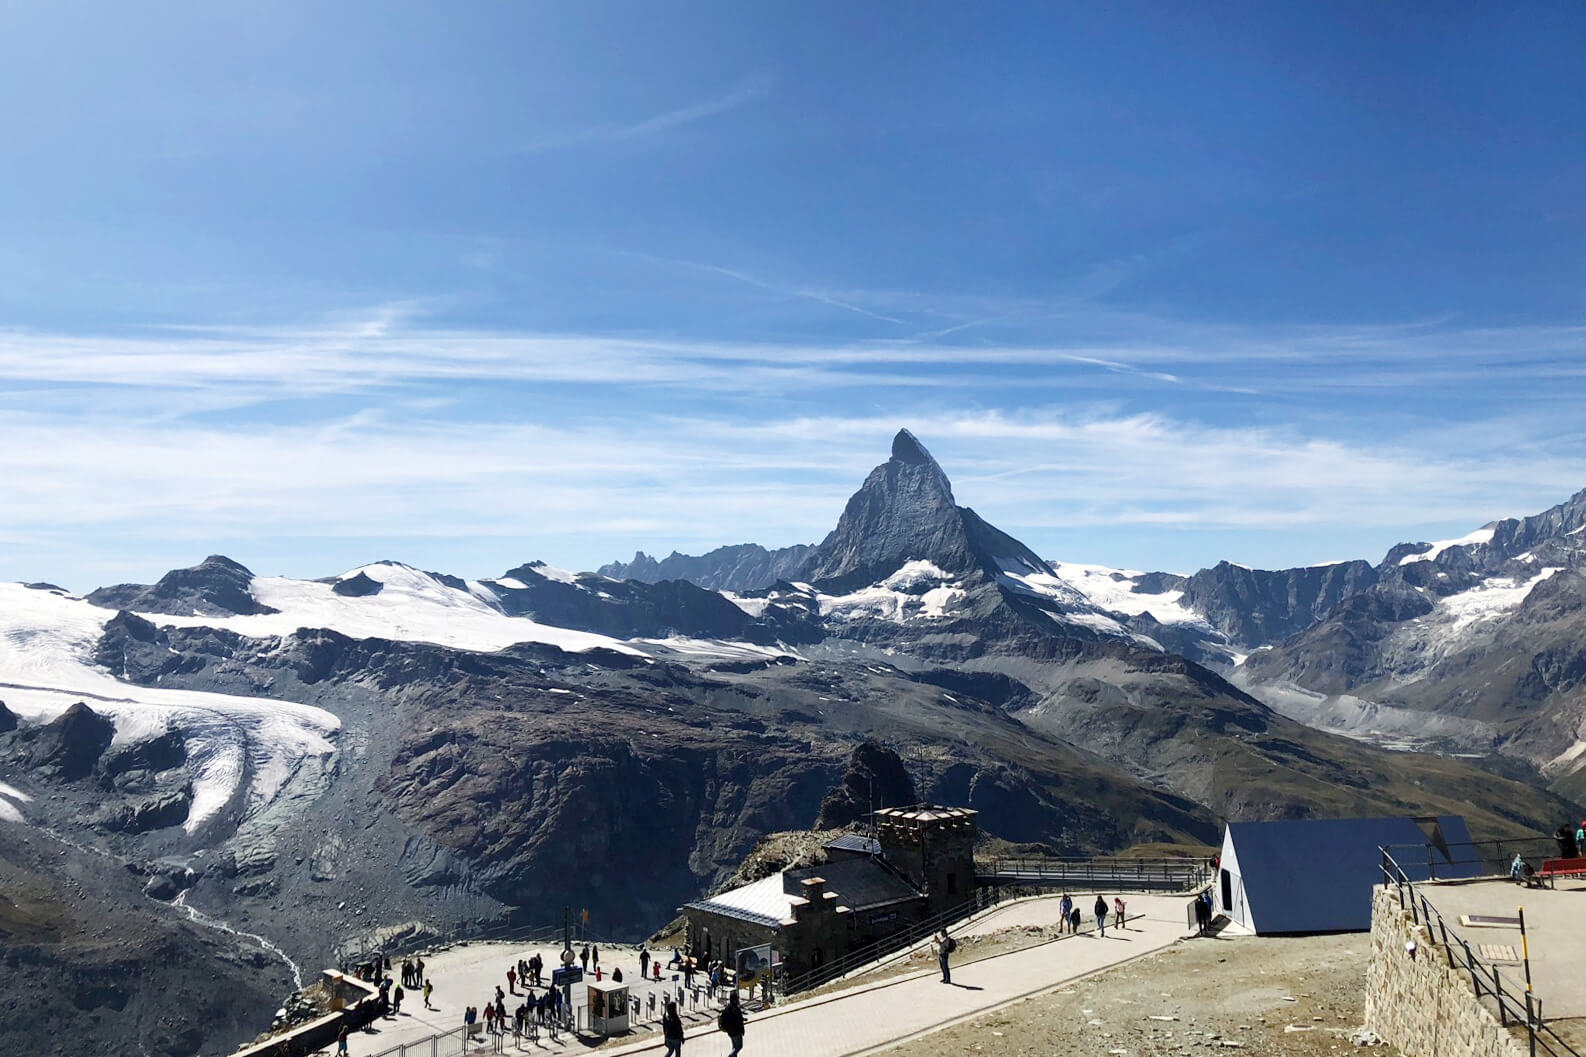 The Matterhorn in Zermatt, Switzerland